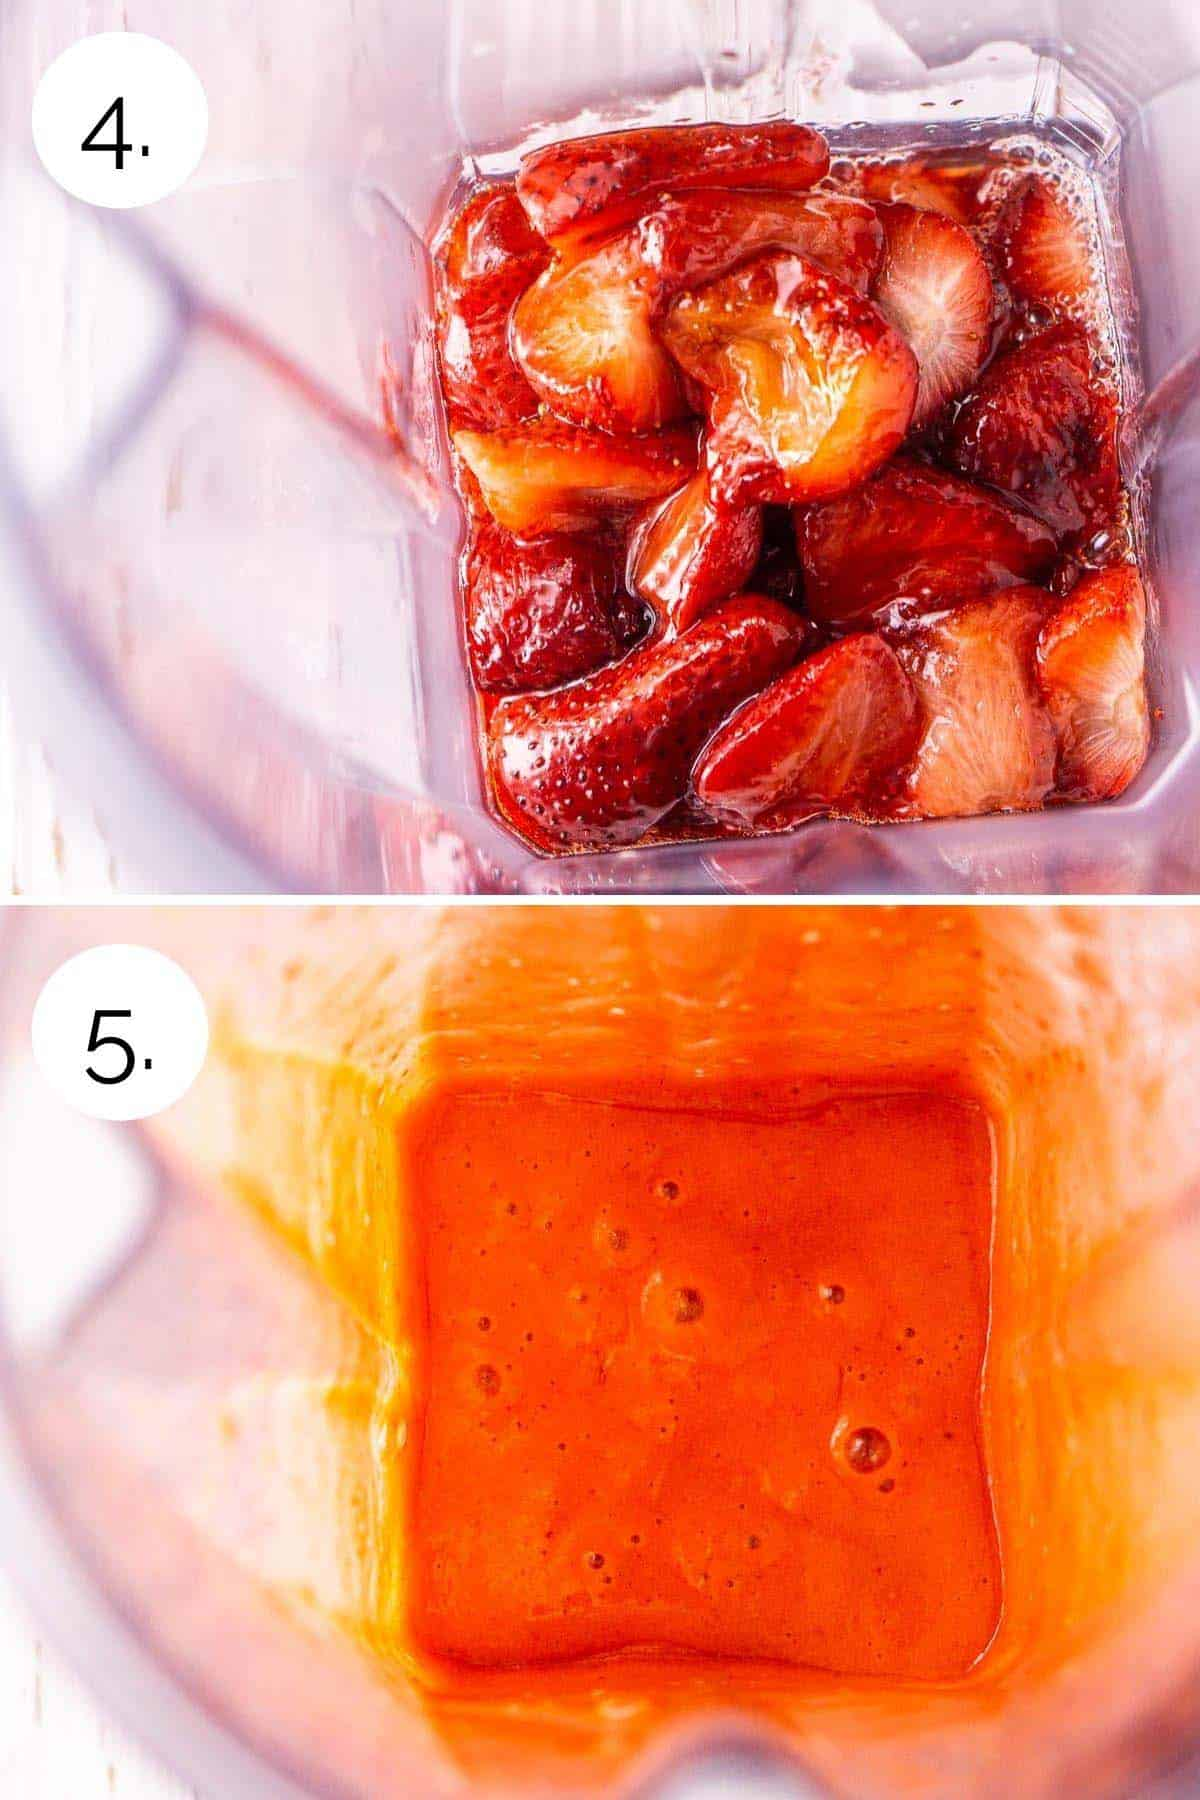 Blending the roasted strawberries until they make a smooth purée.